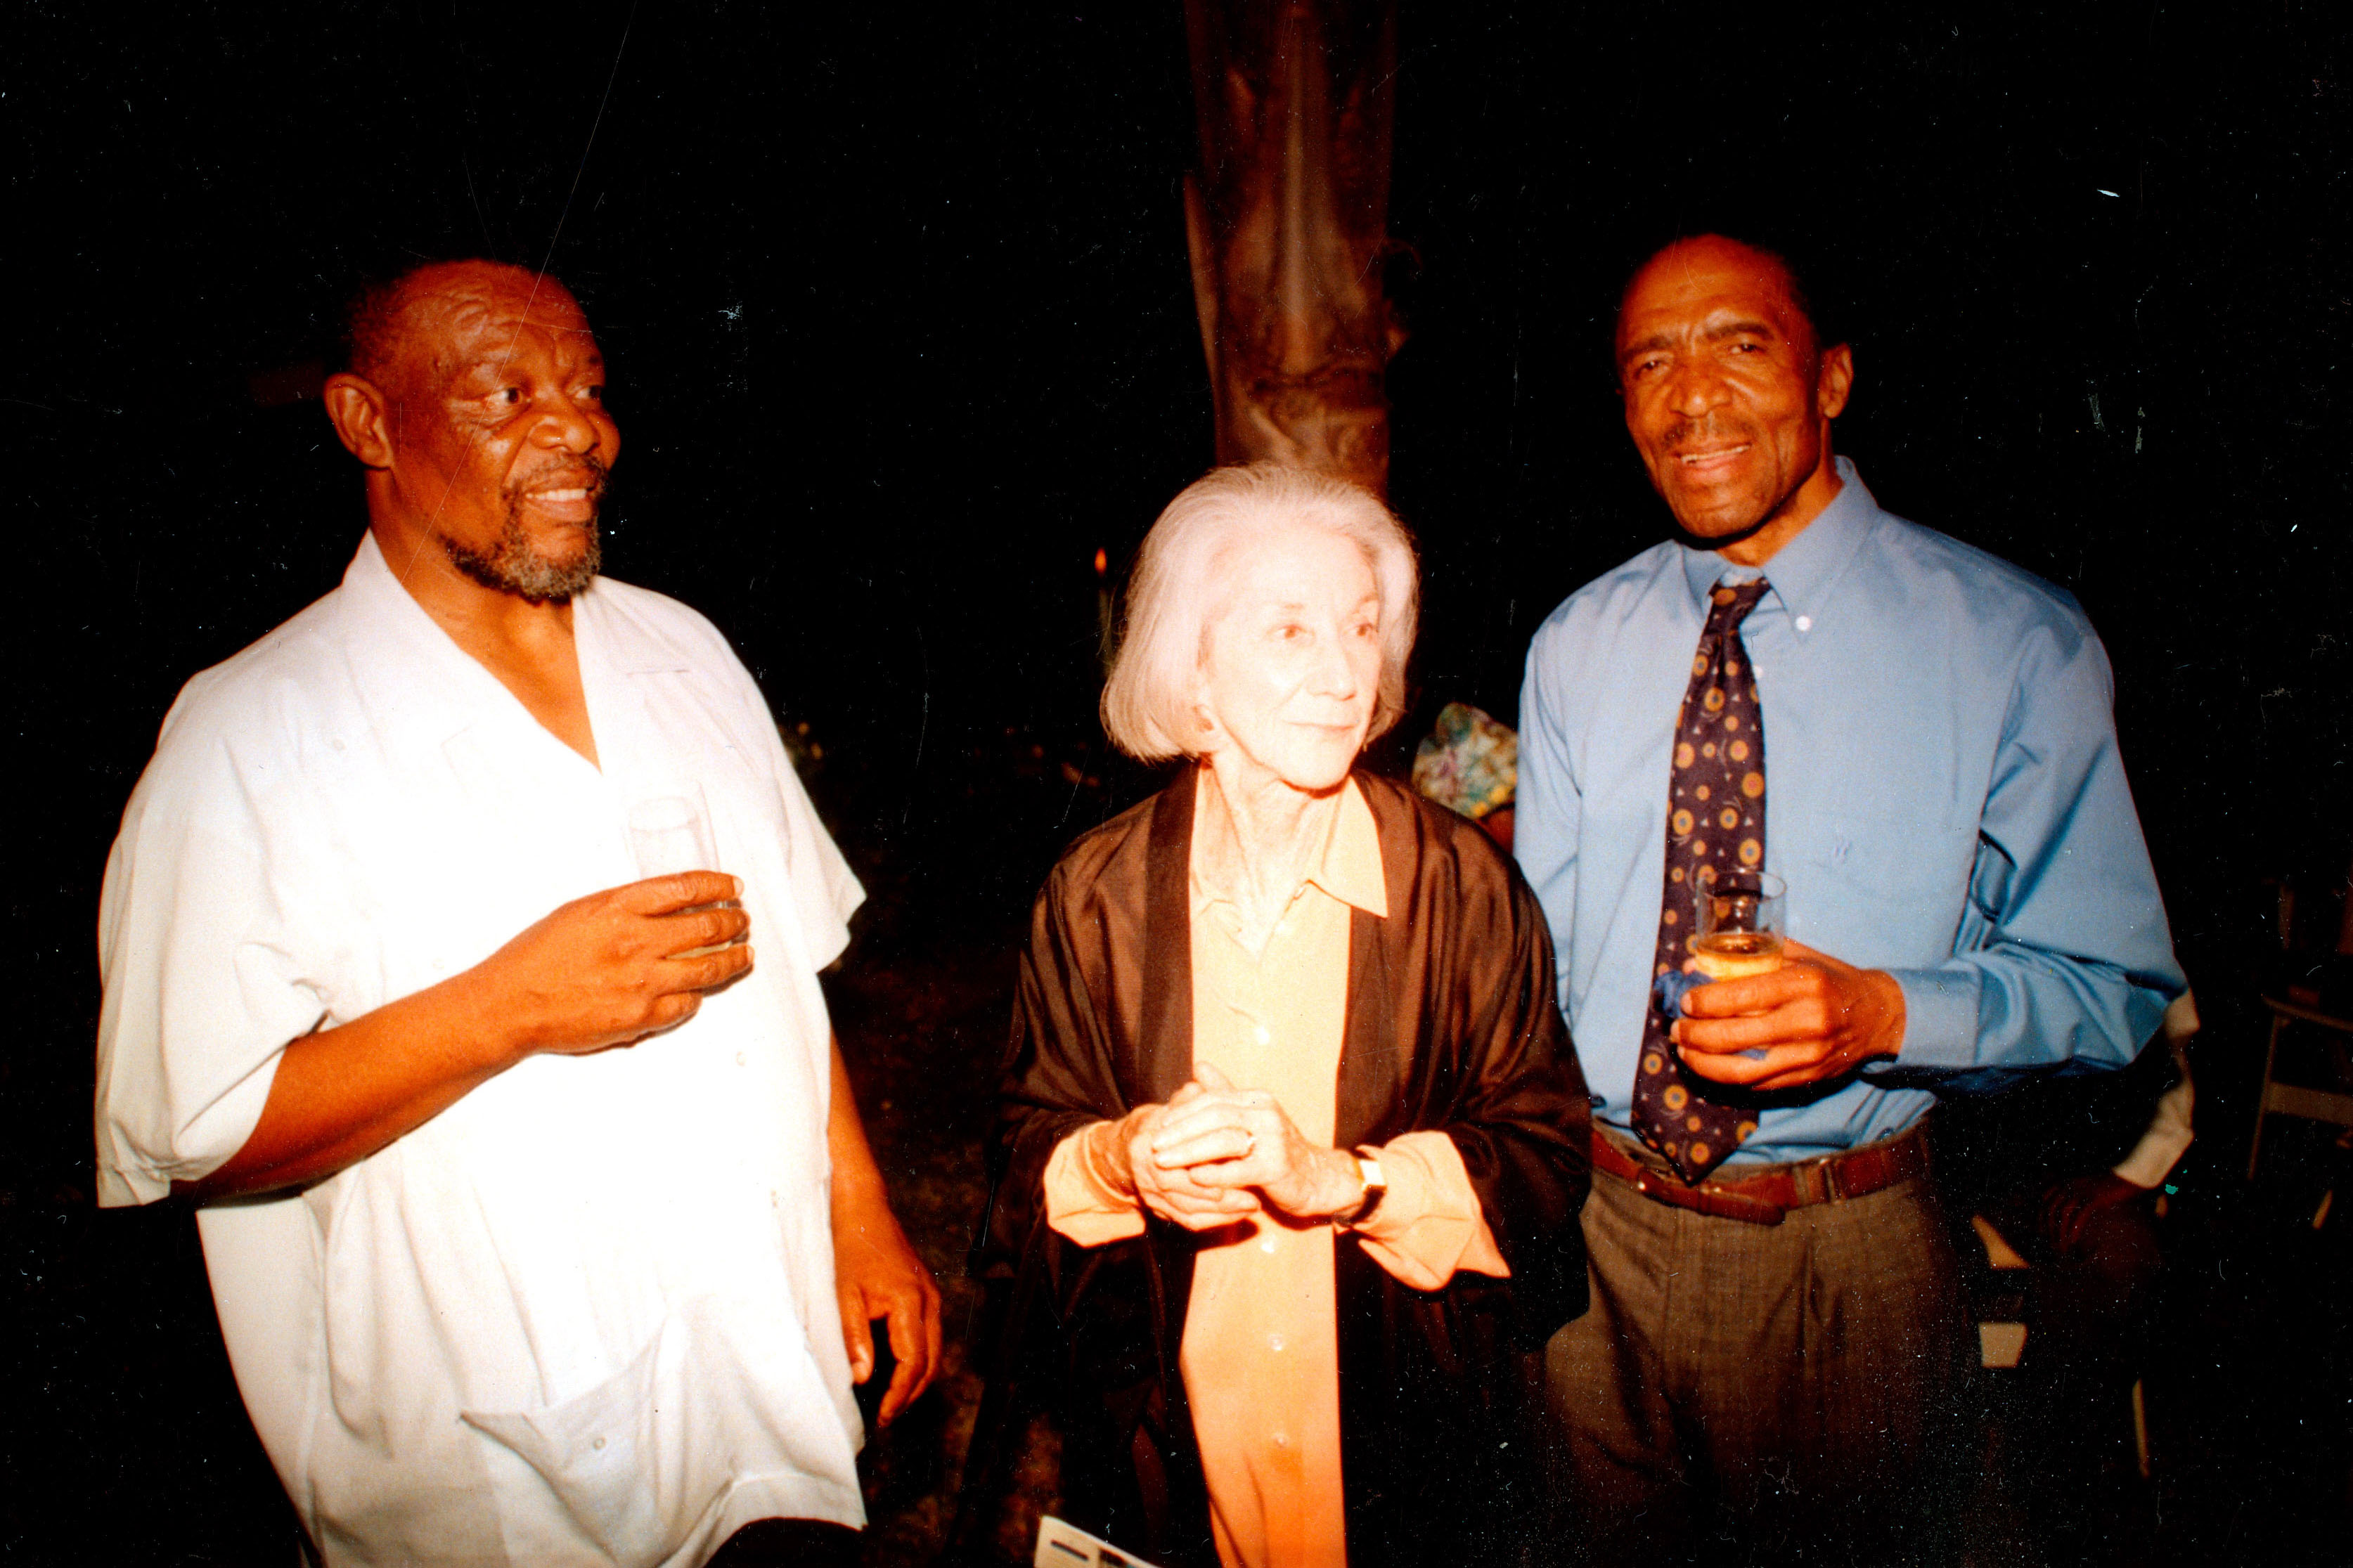 Undated: From left, poet Mongane Wally Serote, novelist Nadine Gordimer and David Koloane. (Photograph: Supplied)